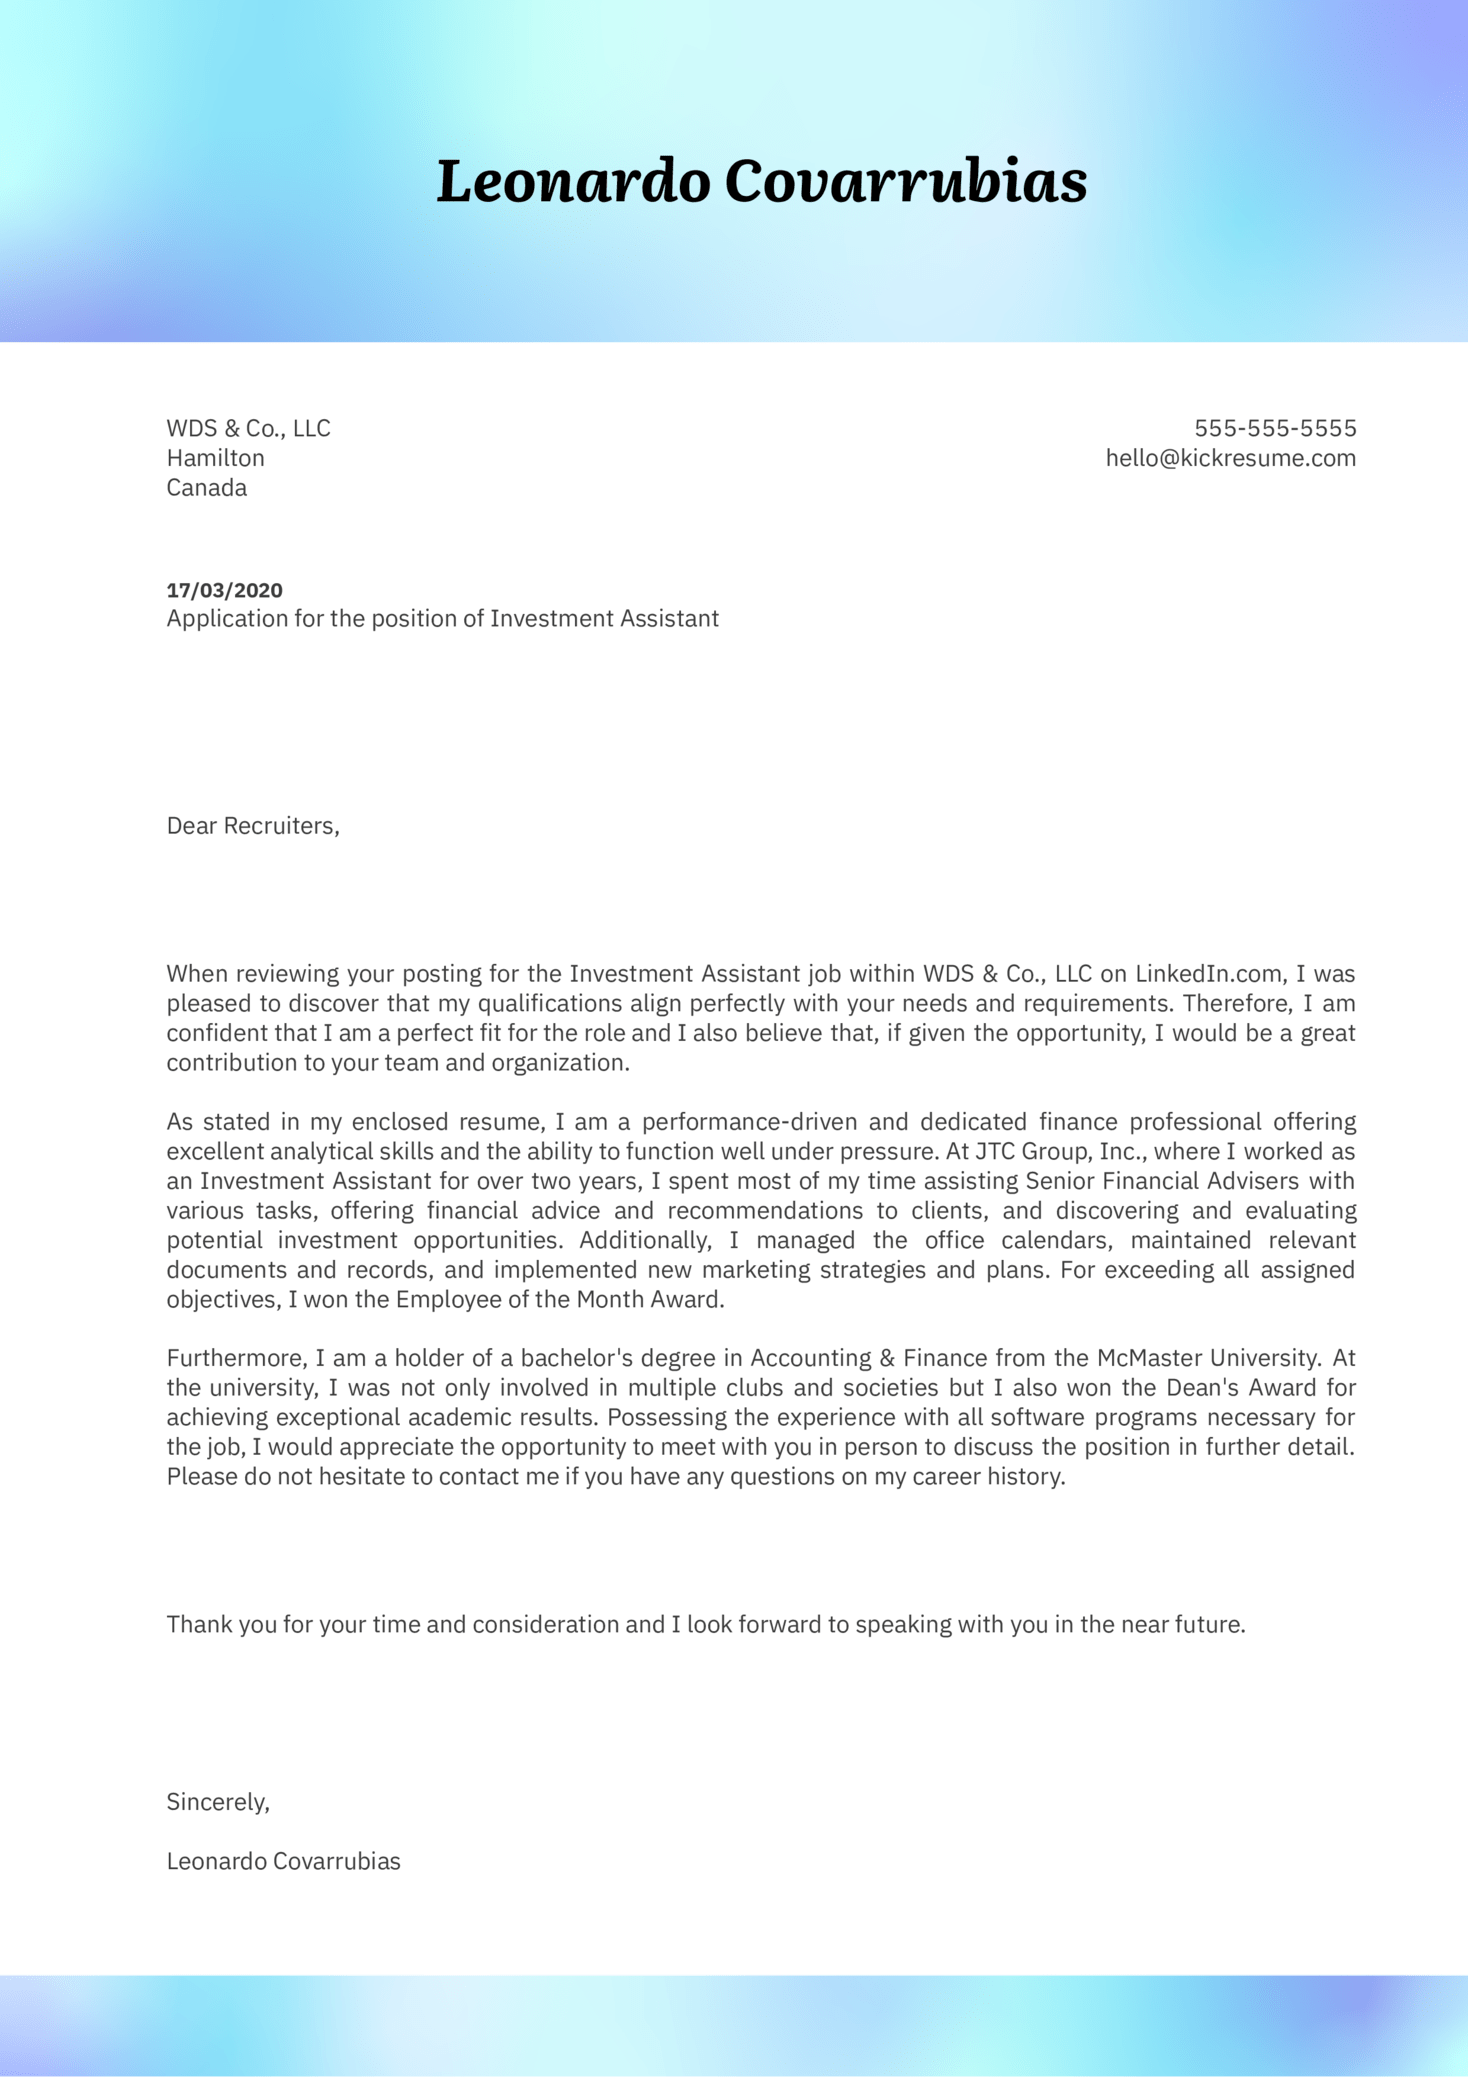 Investment Assistant Cover Letter Example